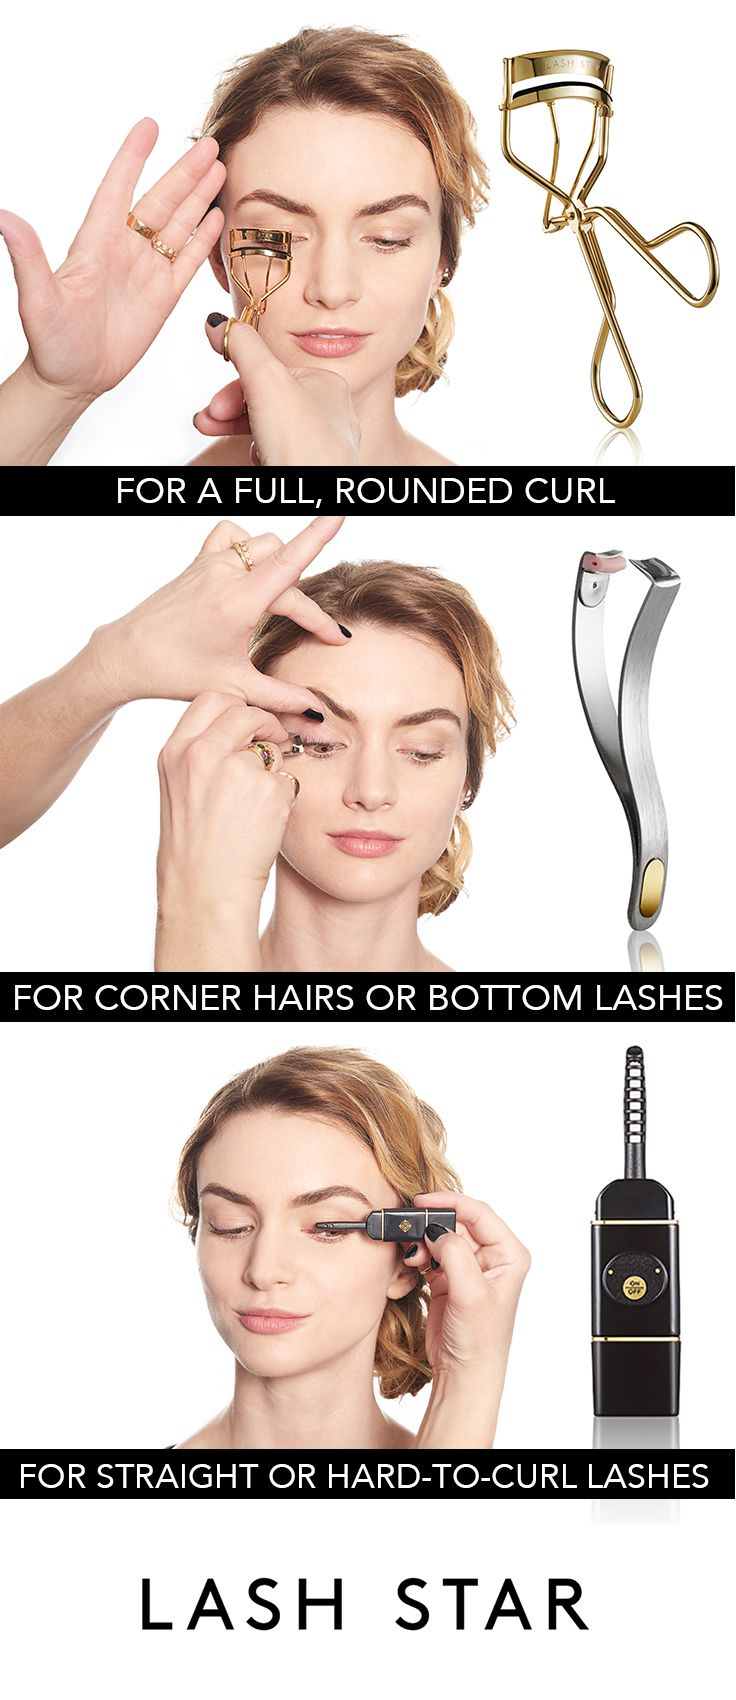 WHAT'S THE BEST @Lash Star Beauty EYELASH CURLER FOR YOU? Our 24k gold Supreme Lash Curler works on all lash types and gives a soft, full, rounded curl. Our stainless steel Individual Lash Curler is great for those pesky corner hairs and bottom lashes and our ceramic Heated Lash Styler is perfect for those with stick-straight, hard-to-curl lashes and it's even gentle enough for curling eyelash extensions.